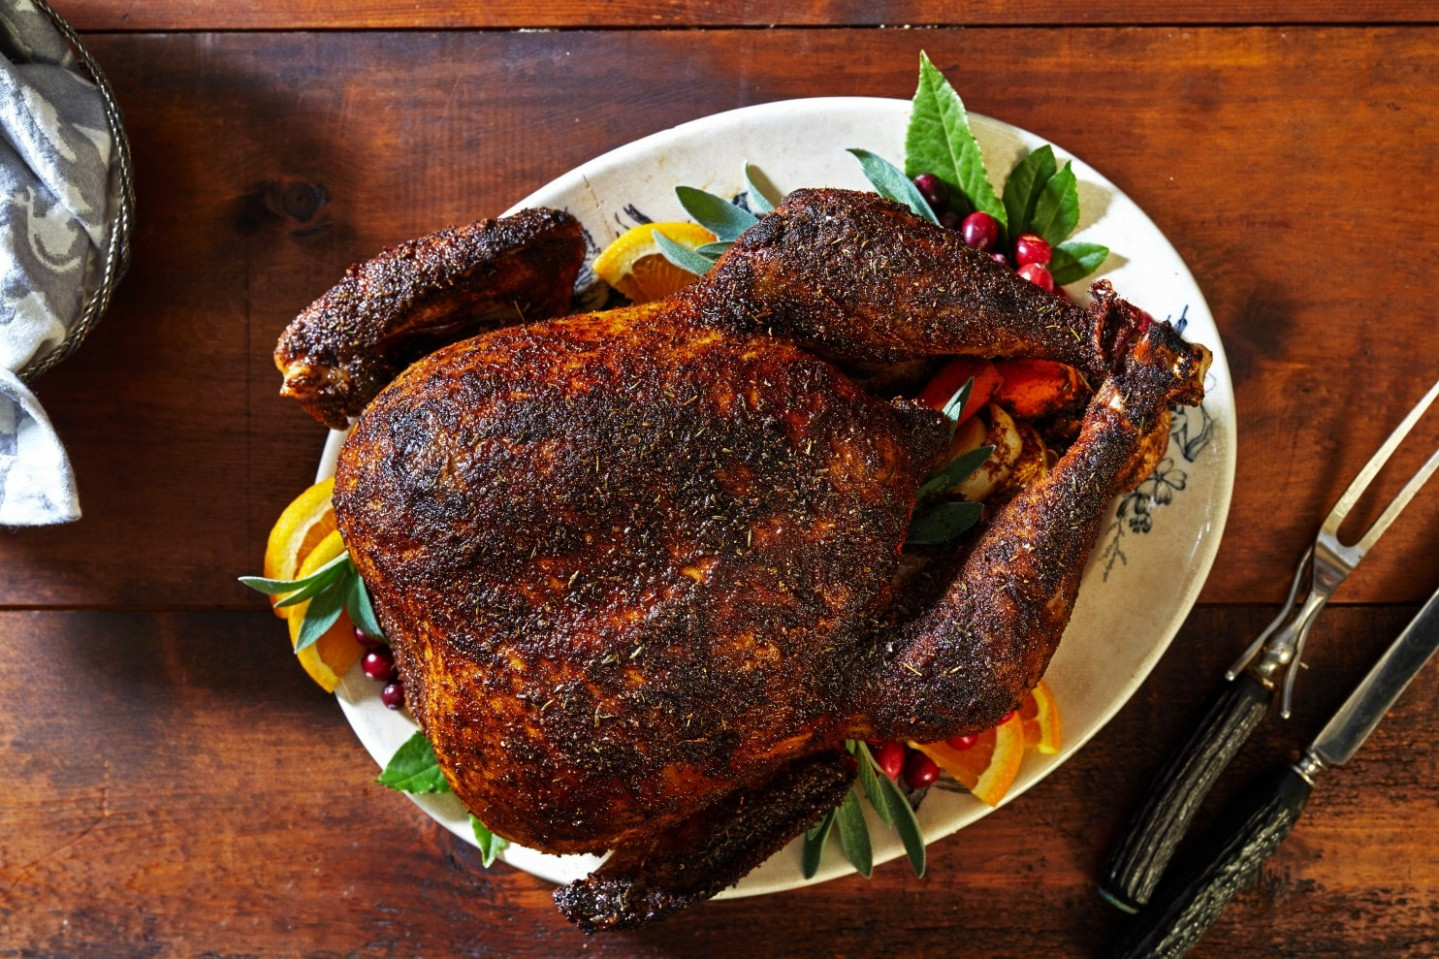 Chile-Rubbed Roast Turkey - healthy recipes roasted turkey legs